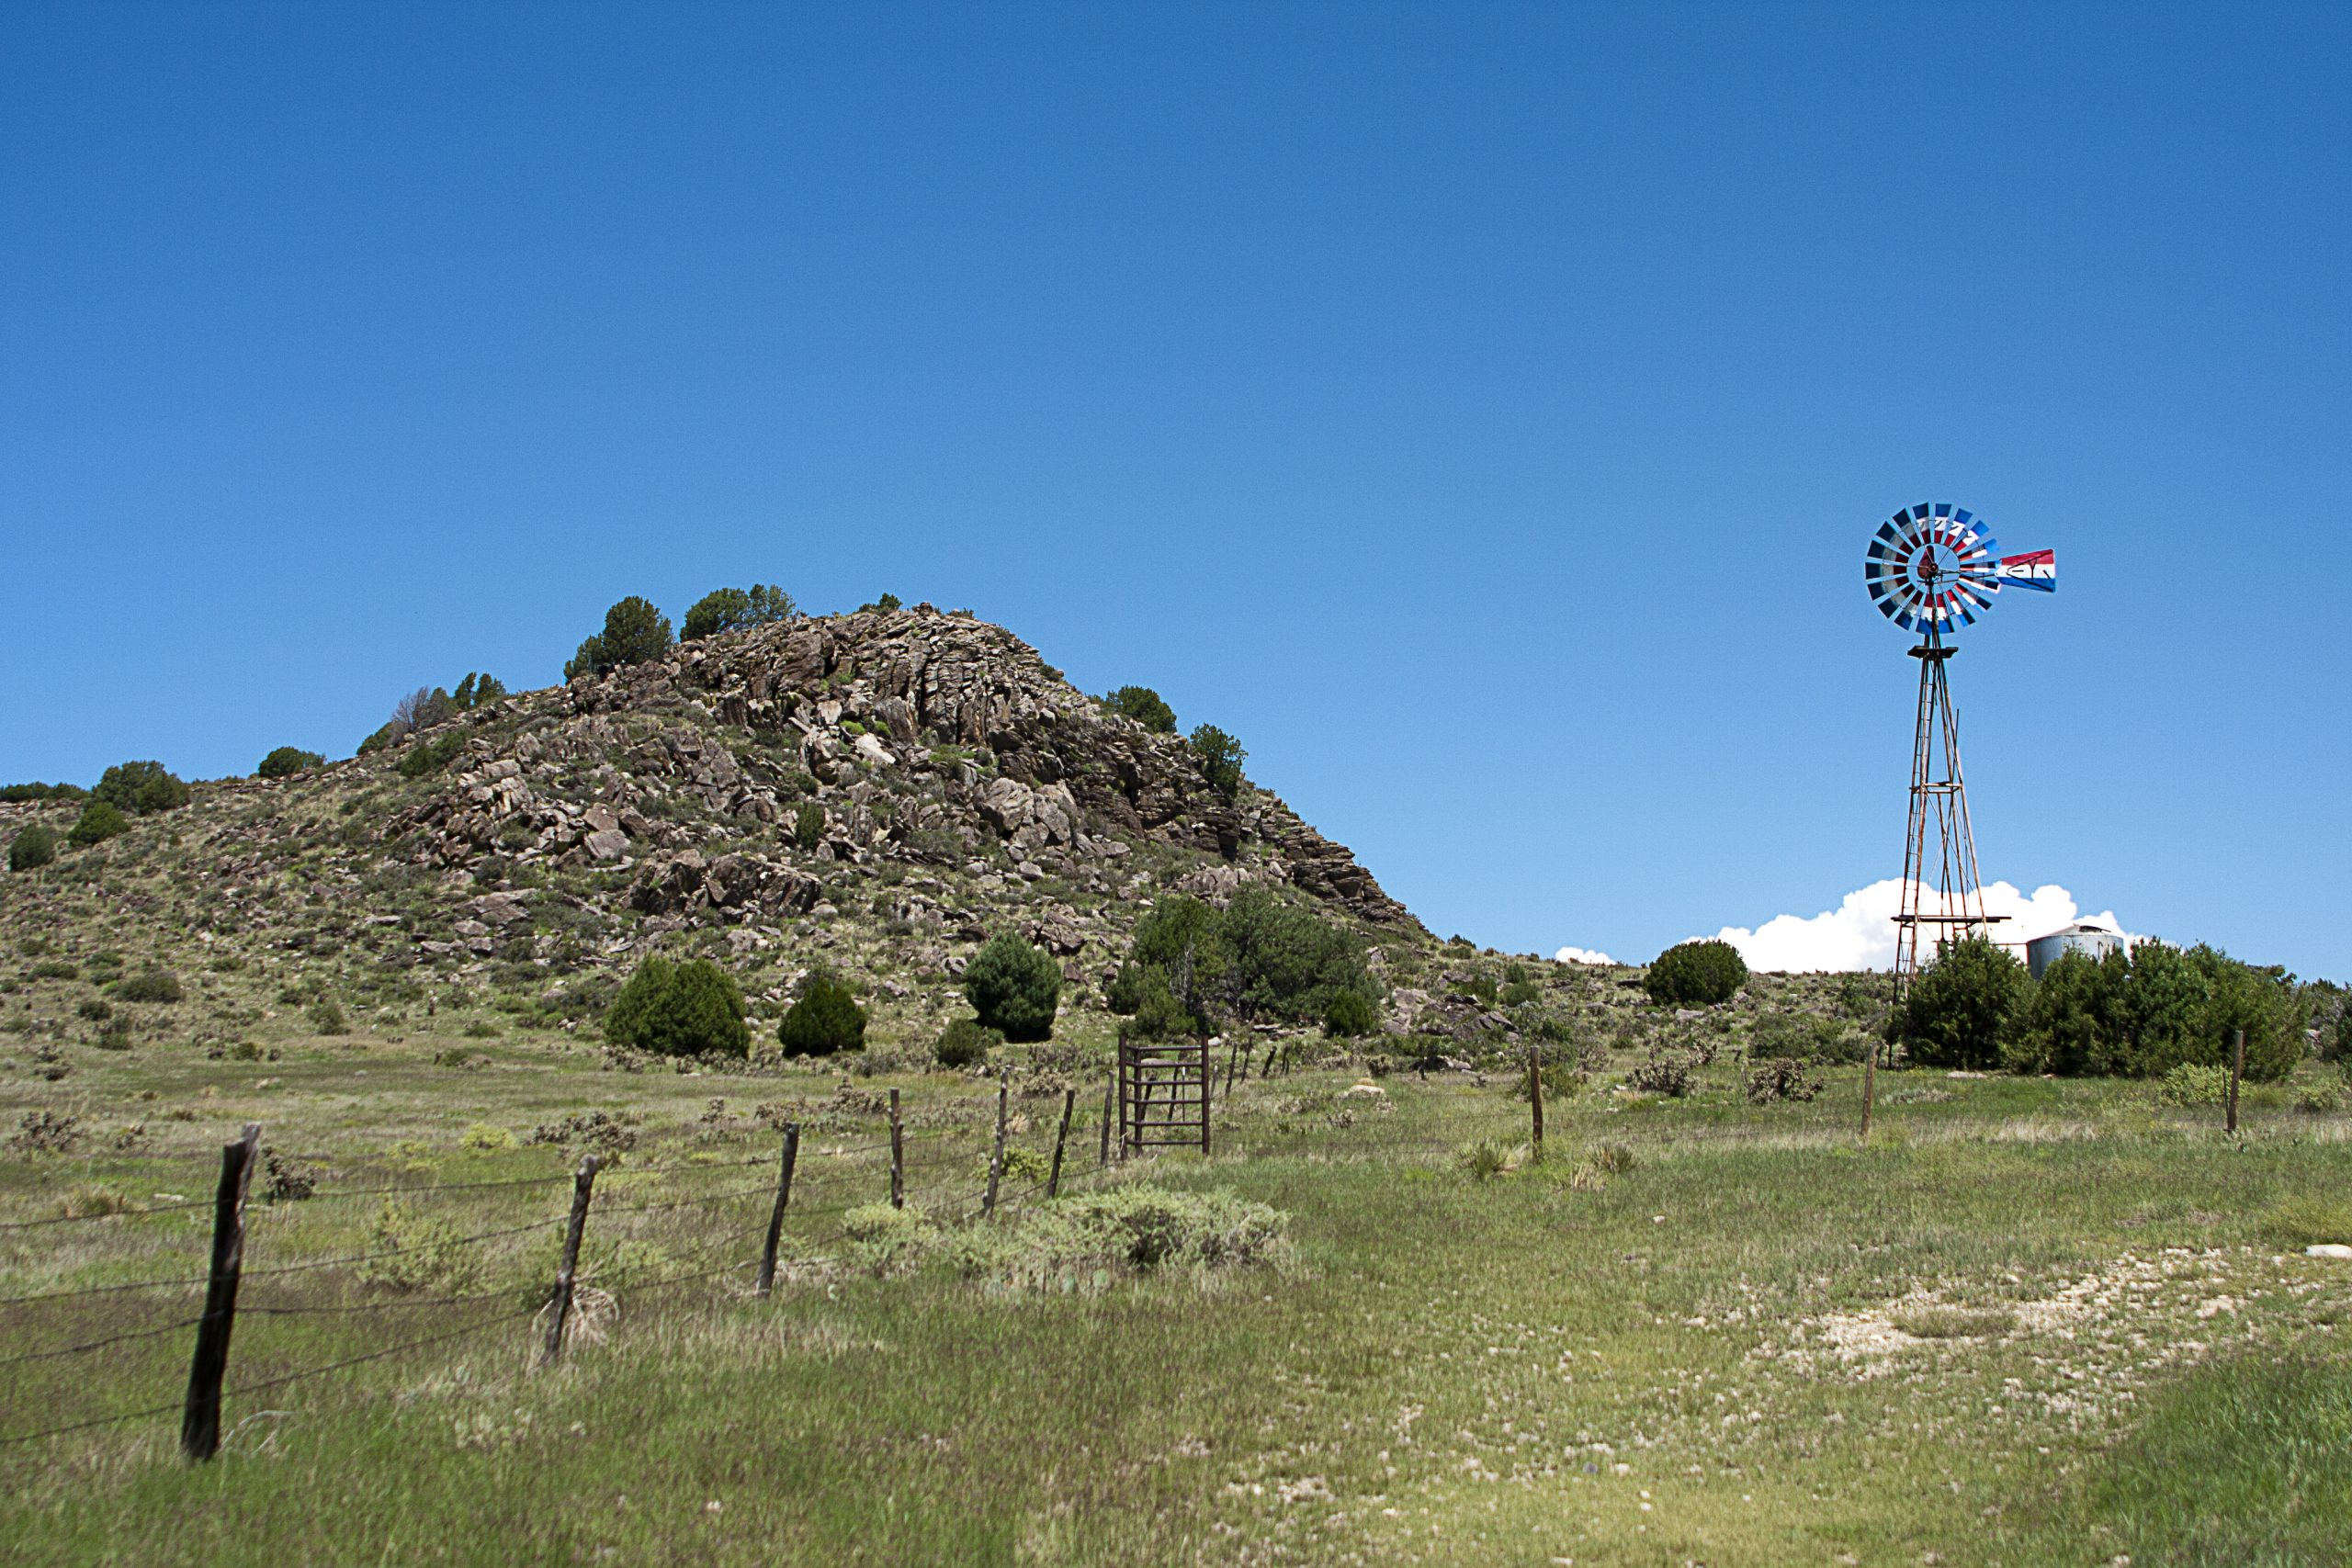 Rocky hill next to red, white, and blue windmill